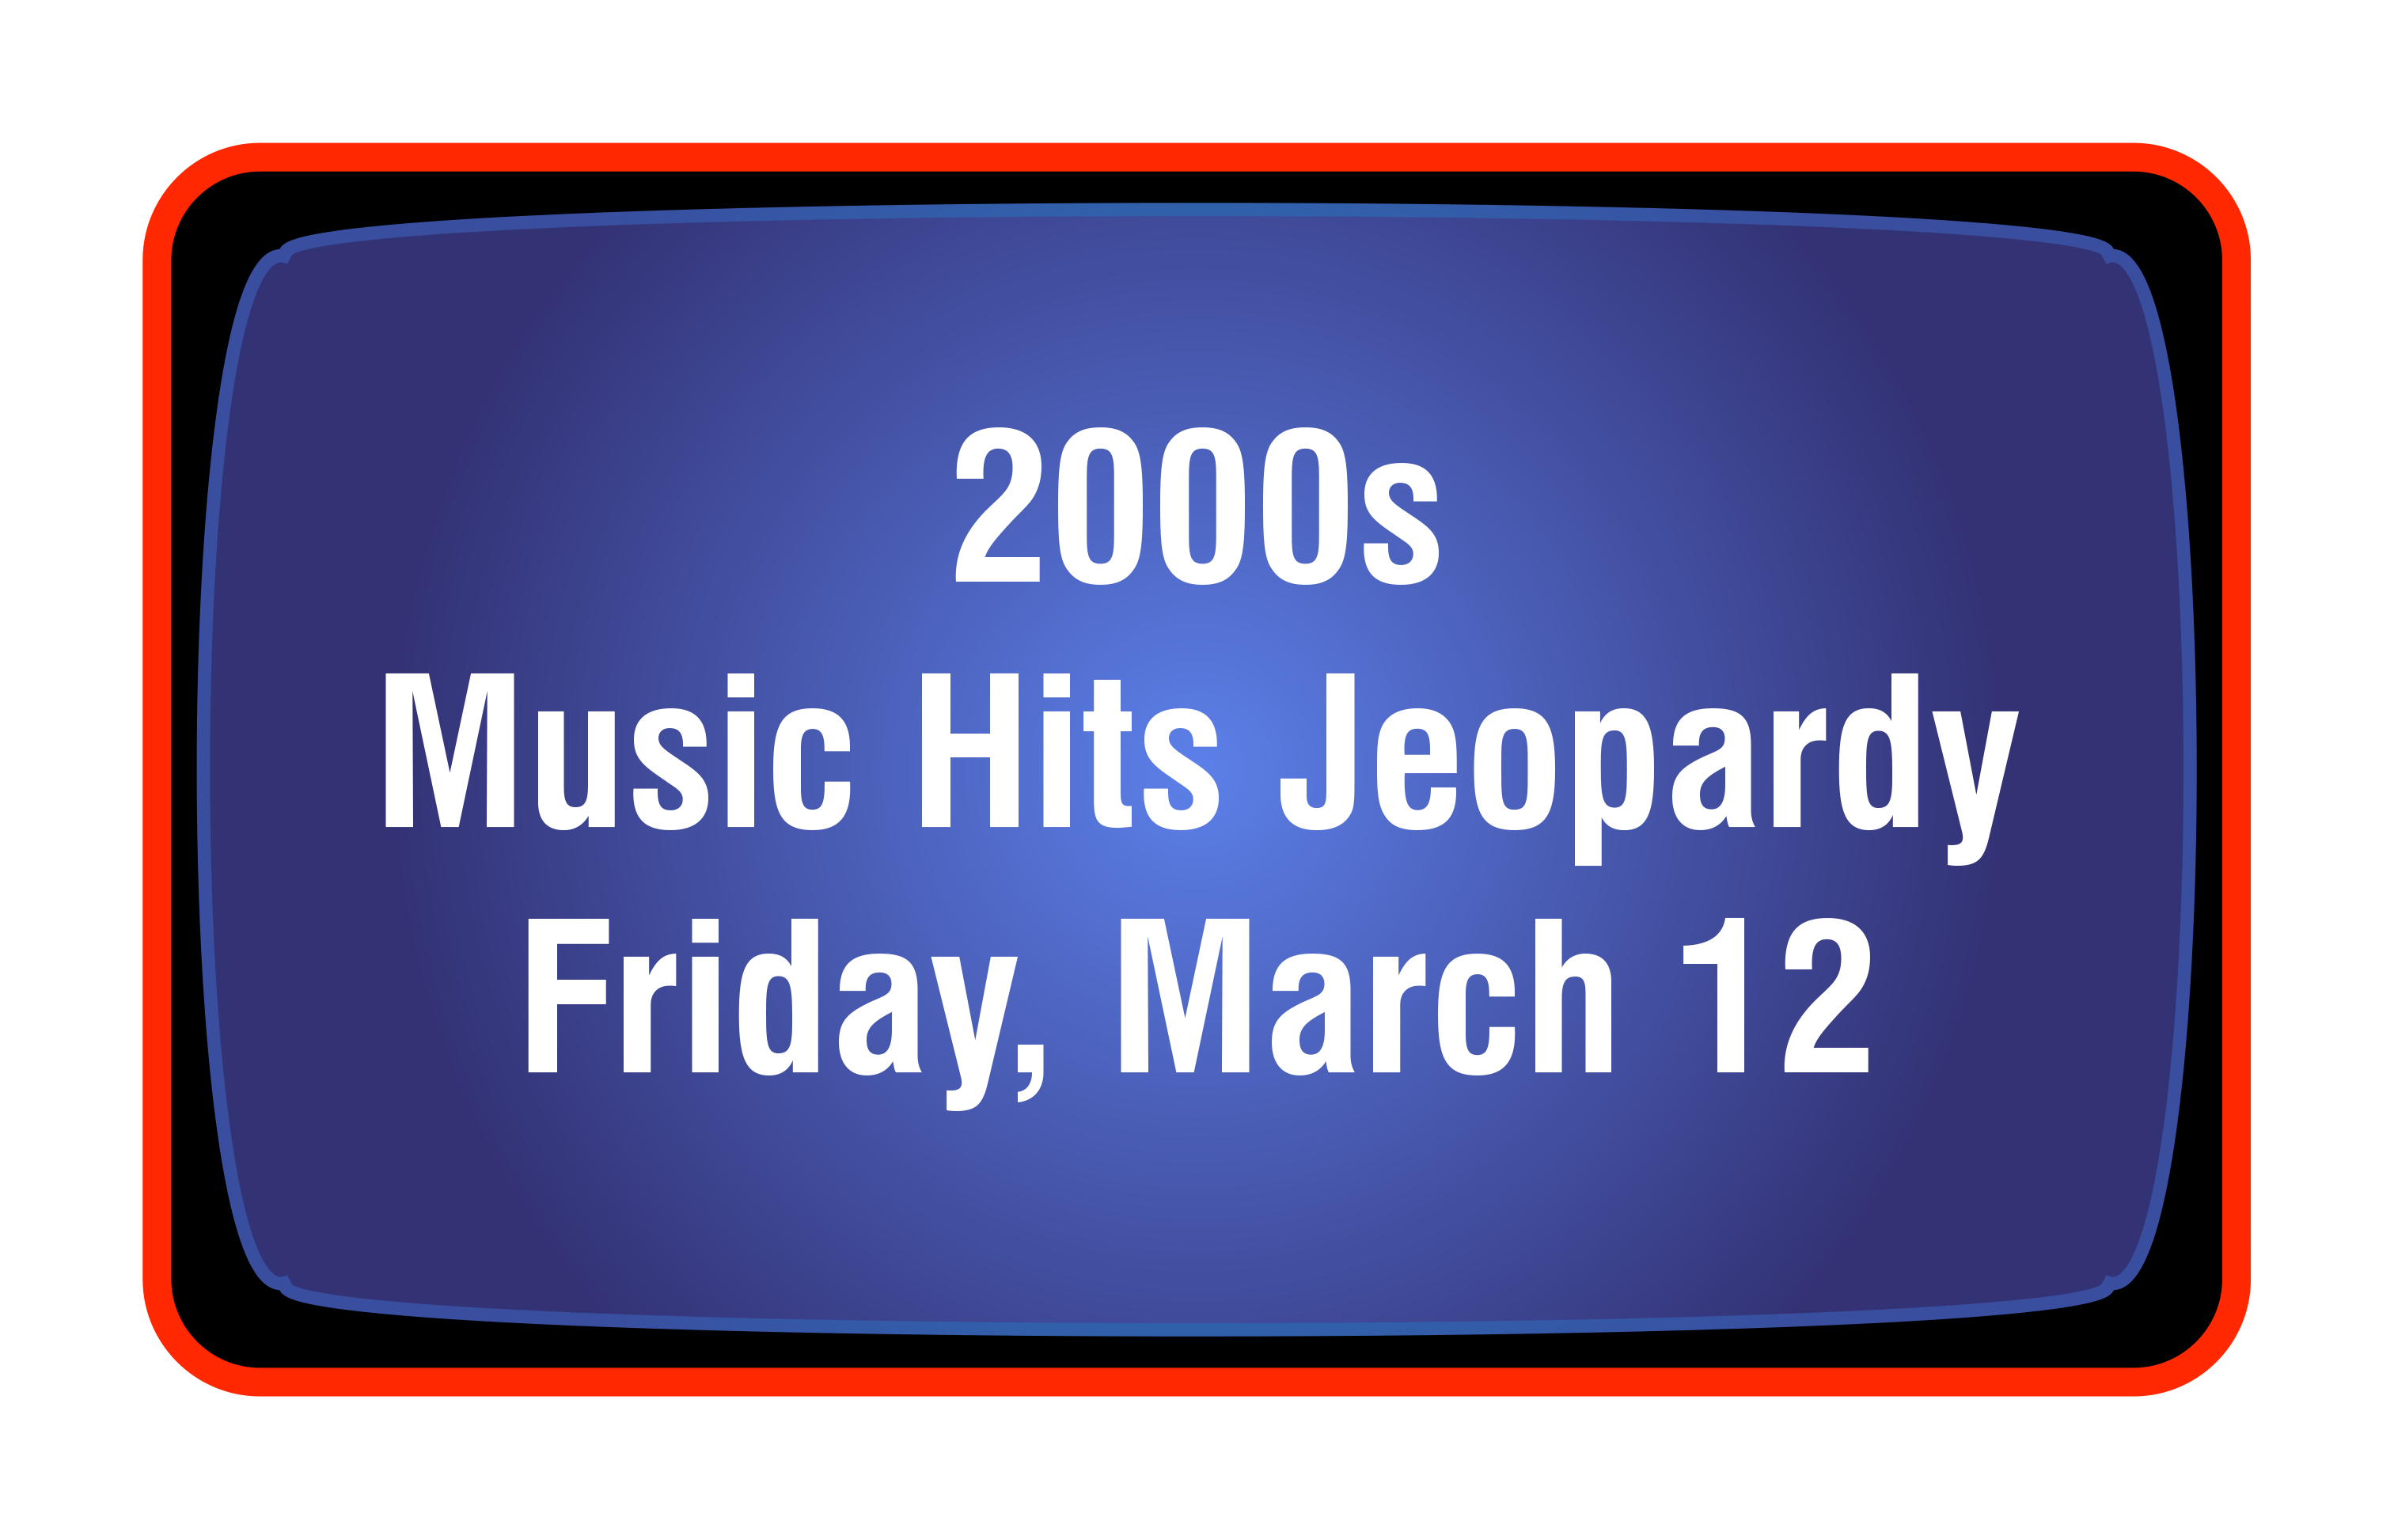 2000s Music Hits Jeopardy